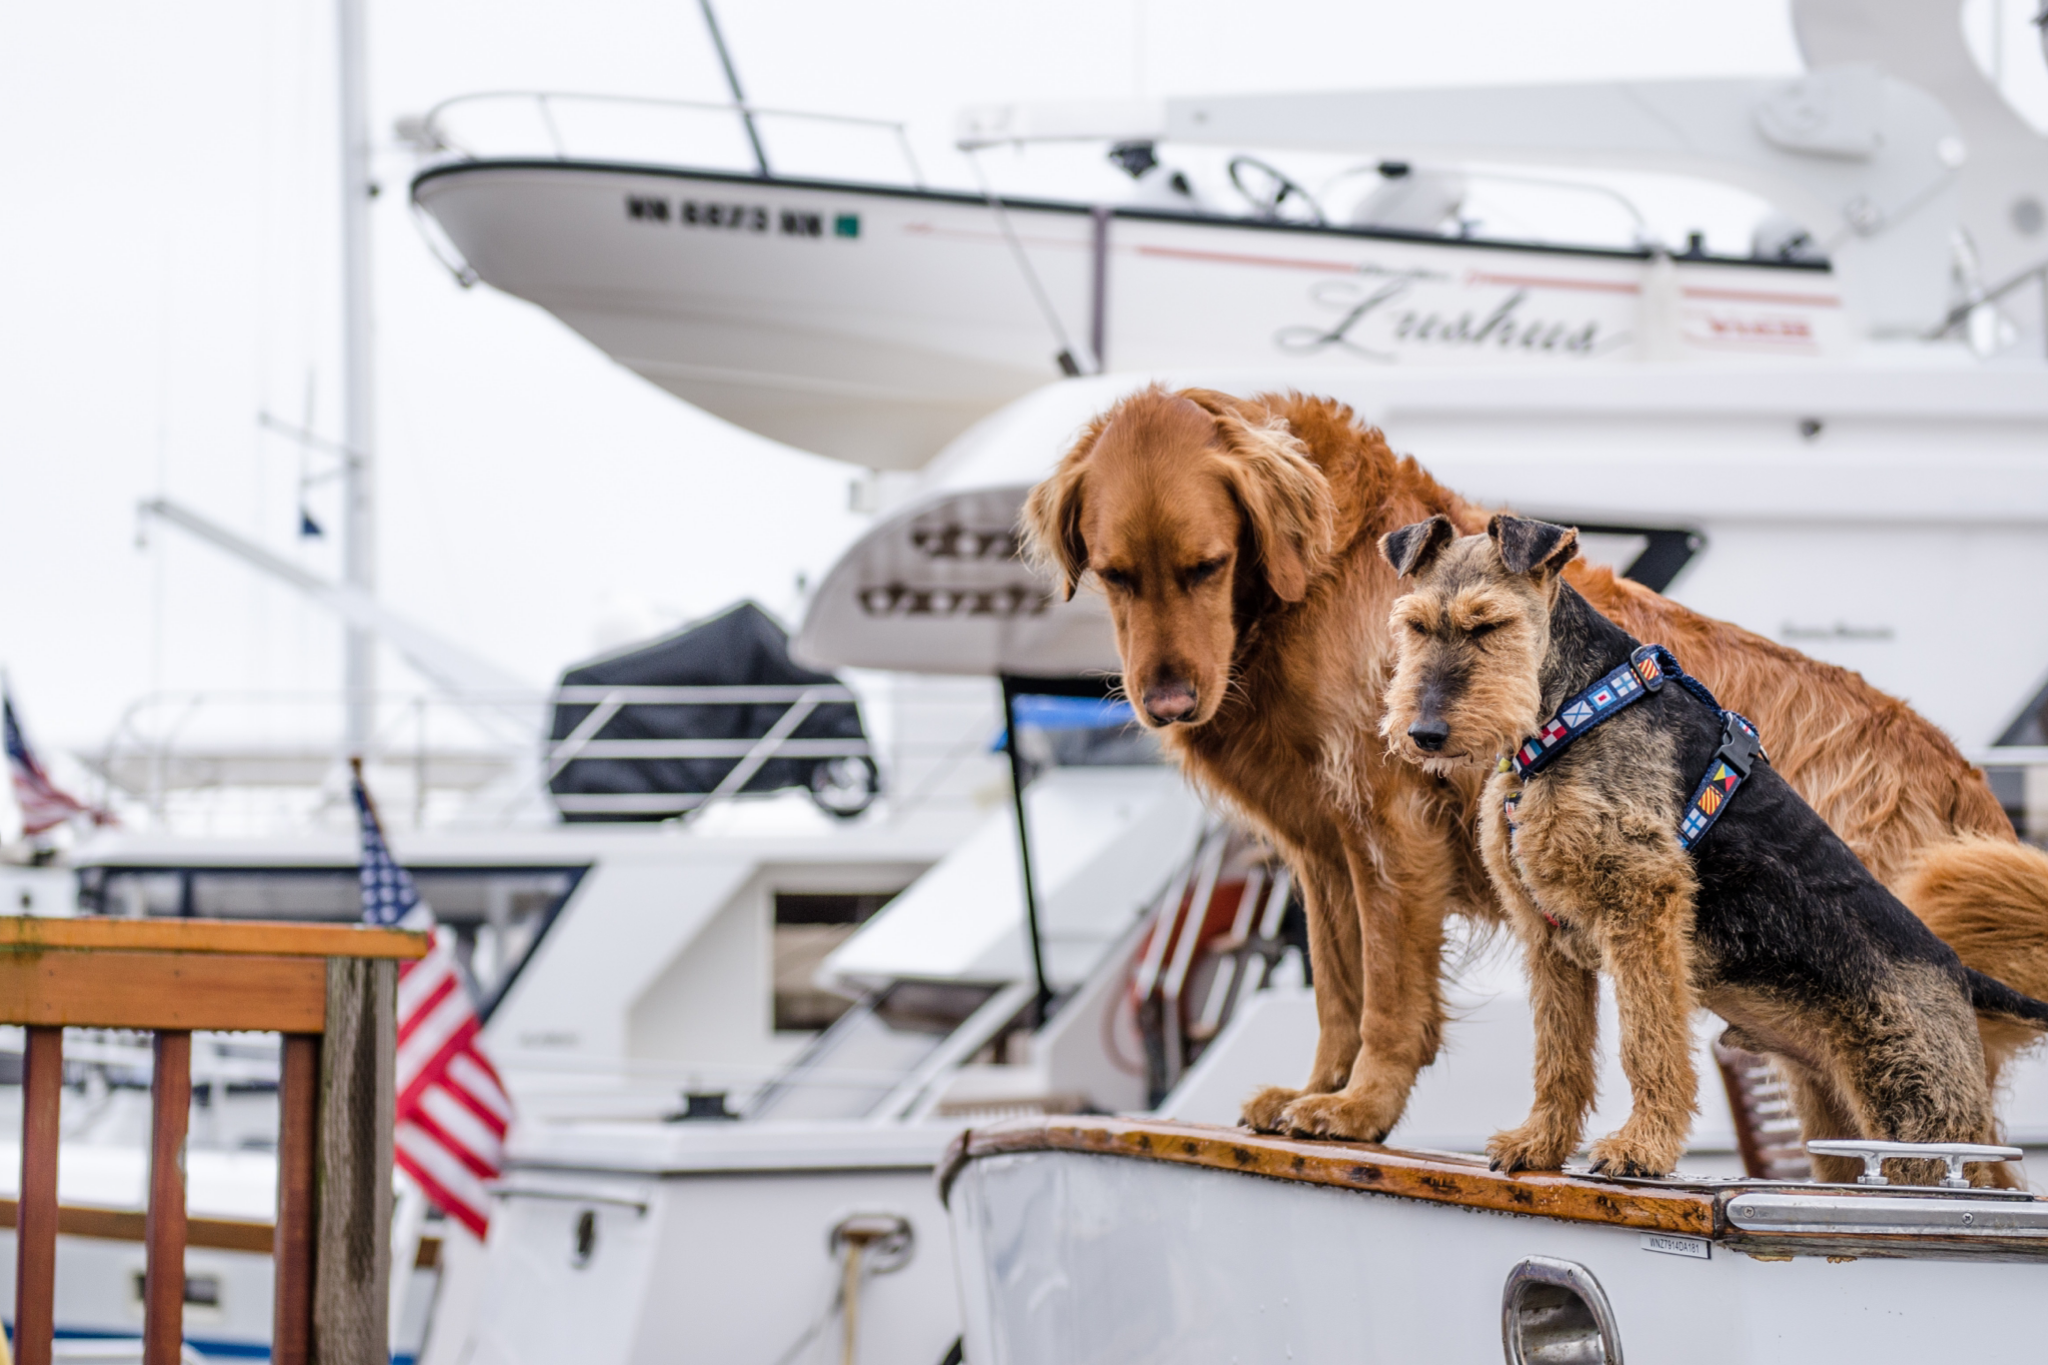 Top 4 Places Near Lake Winnipesaukee to Visit with Your Dog by Boat